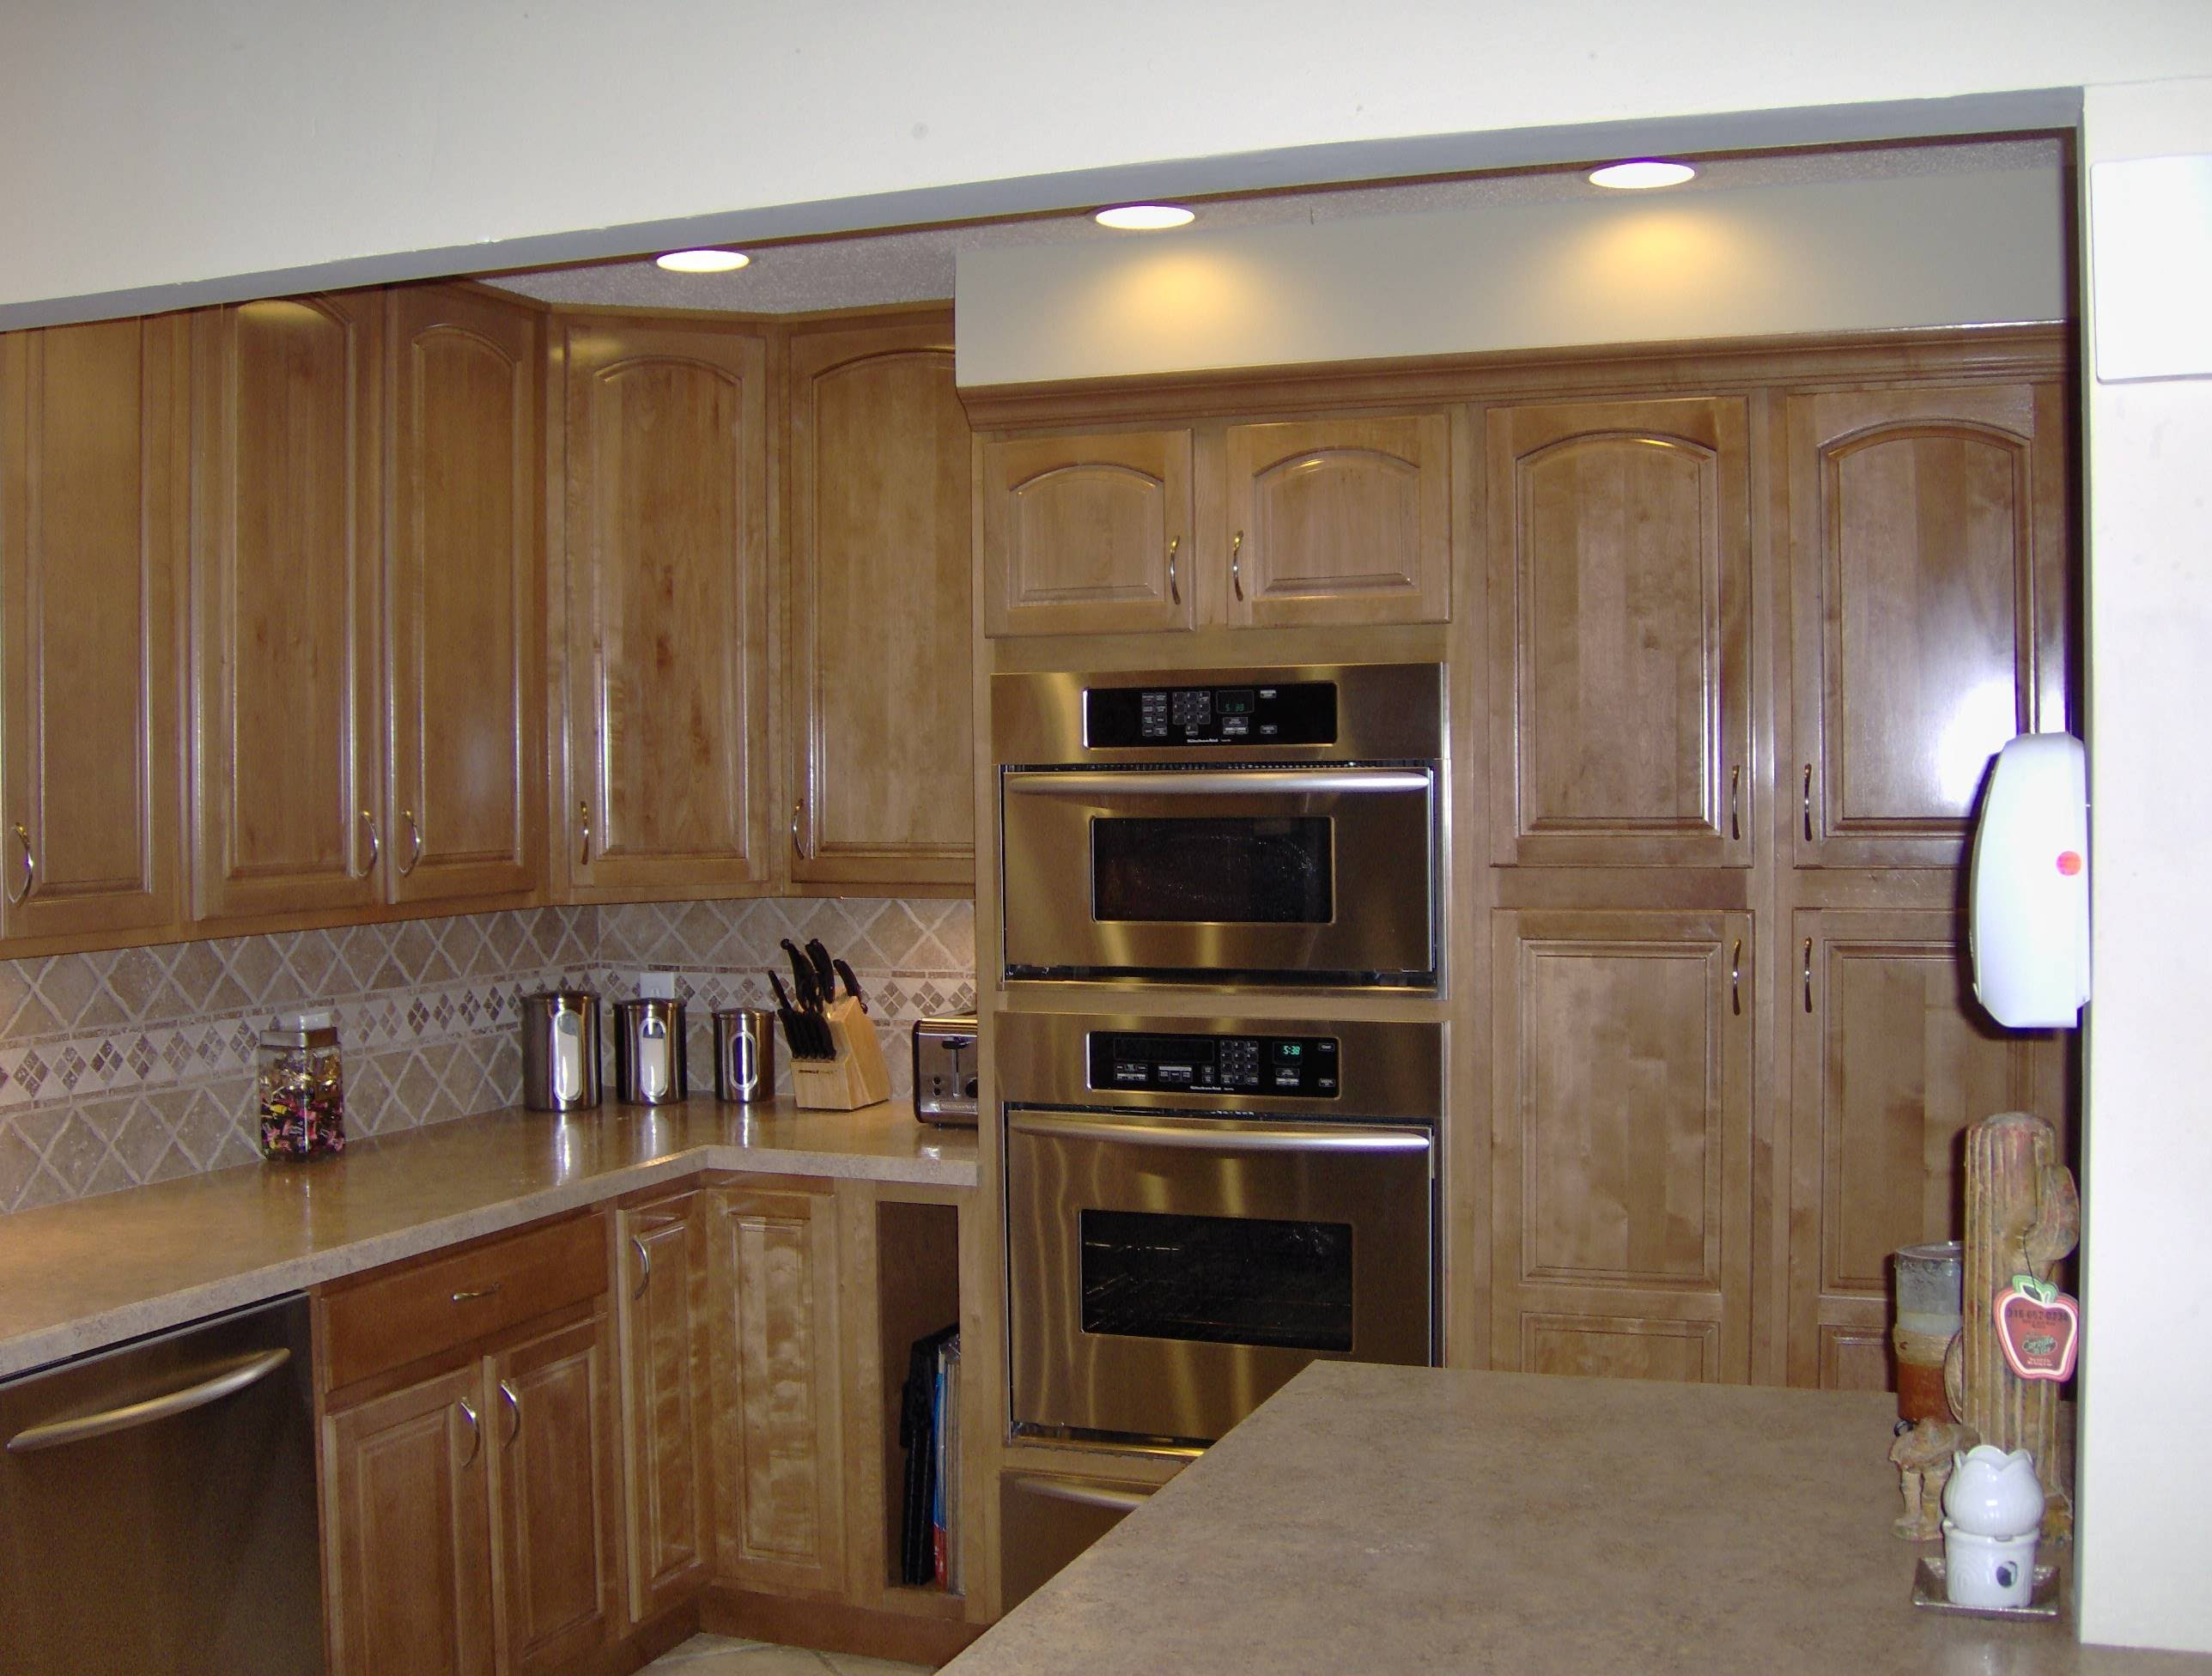 Kitchencabinetsphotogallerry customwoodcraftinfo for Custom kitchen remodeling